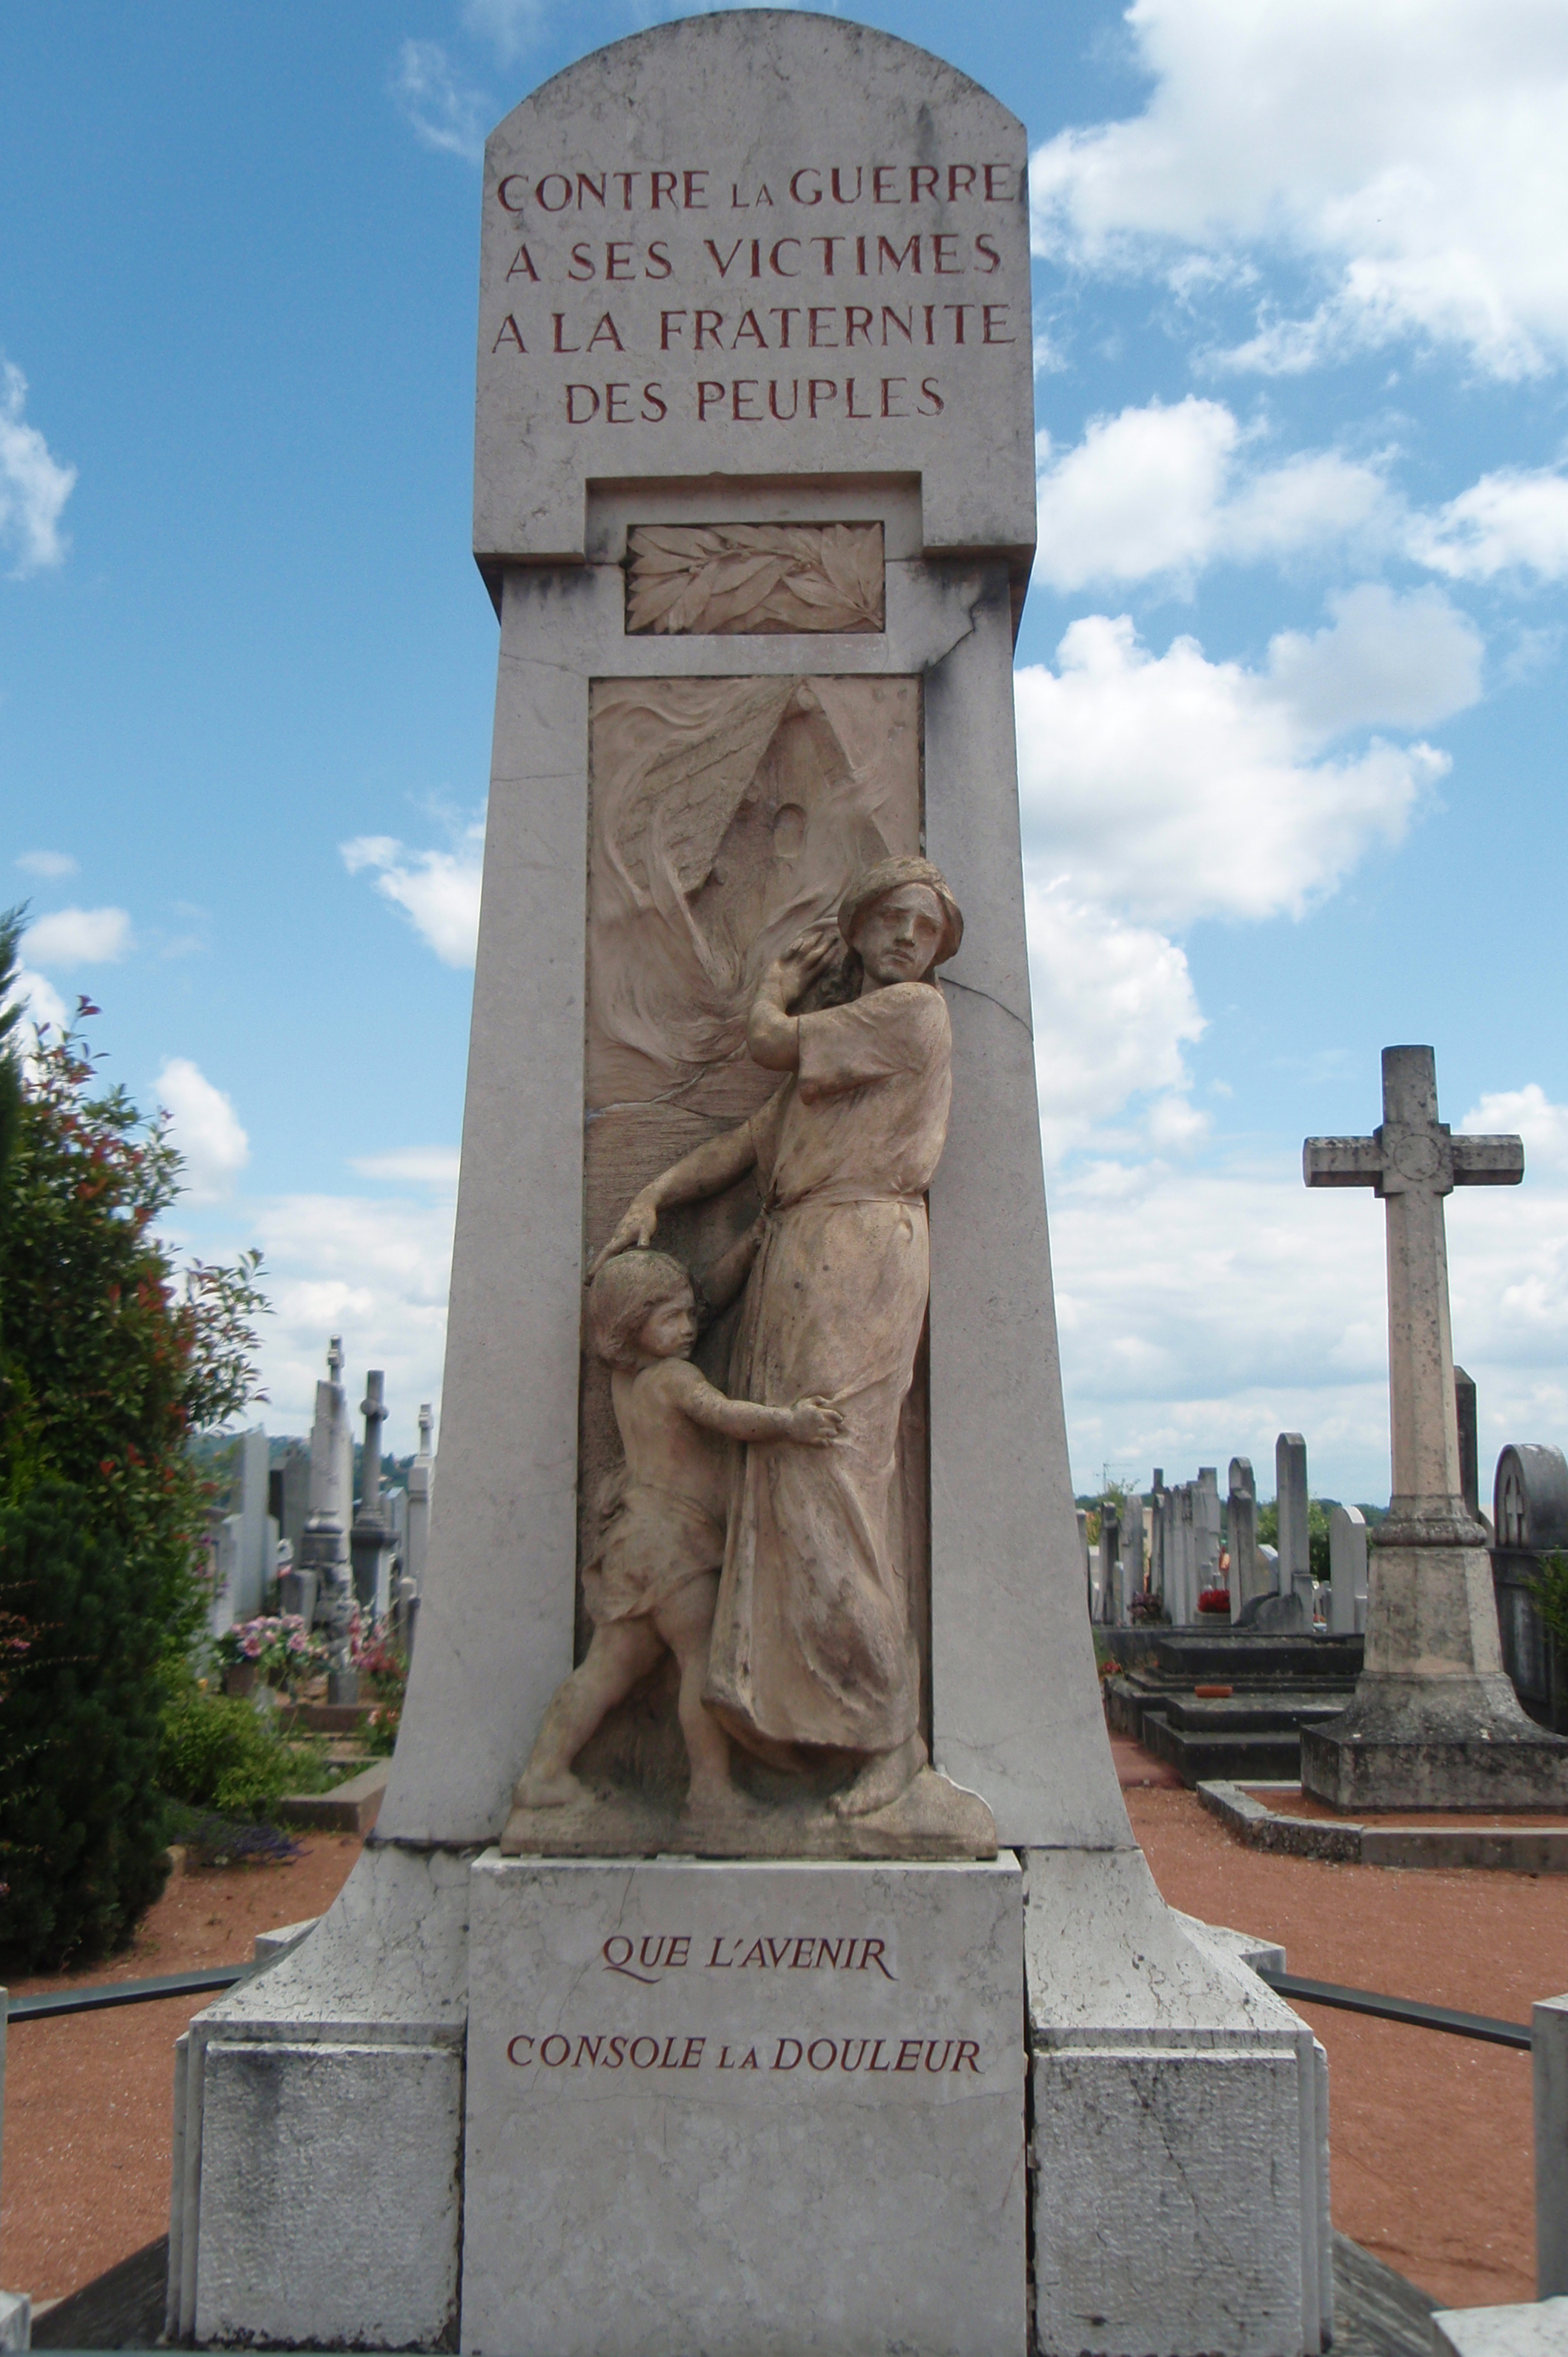 http://upload.wikimedia.org/wikipedia/commons/9/9a/Dardilly,_le_monument_aux_morts_pacifiste.jpg